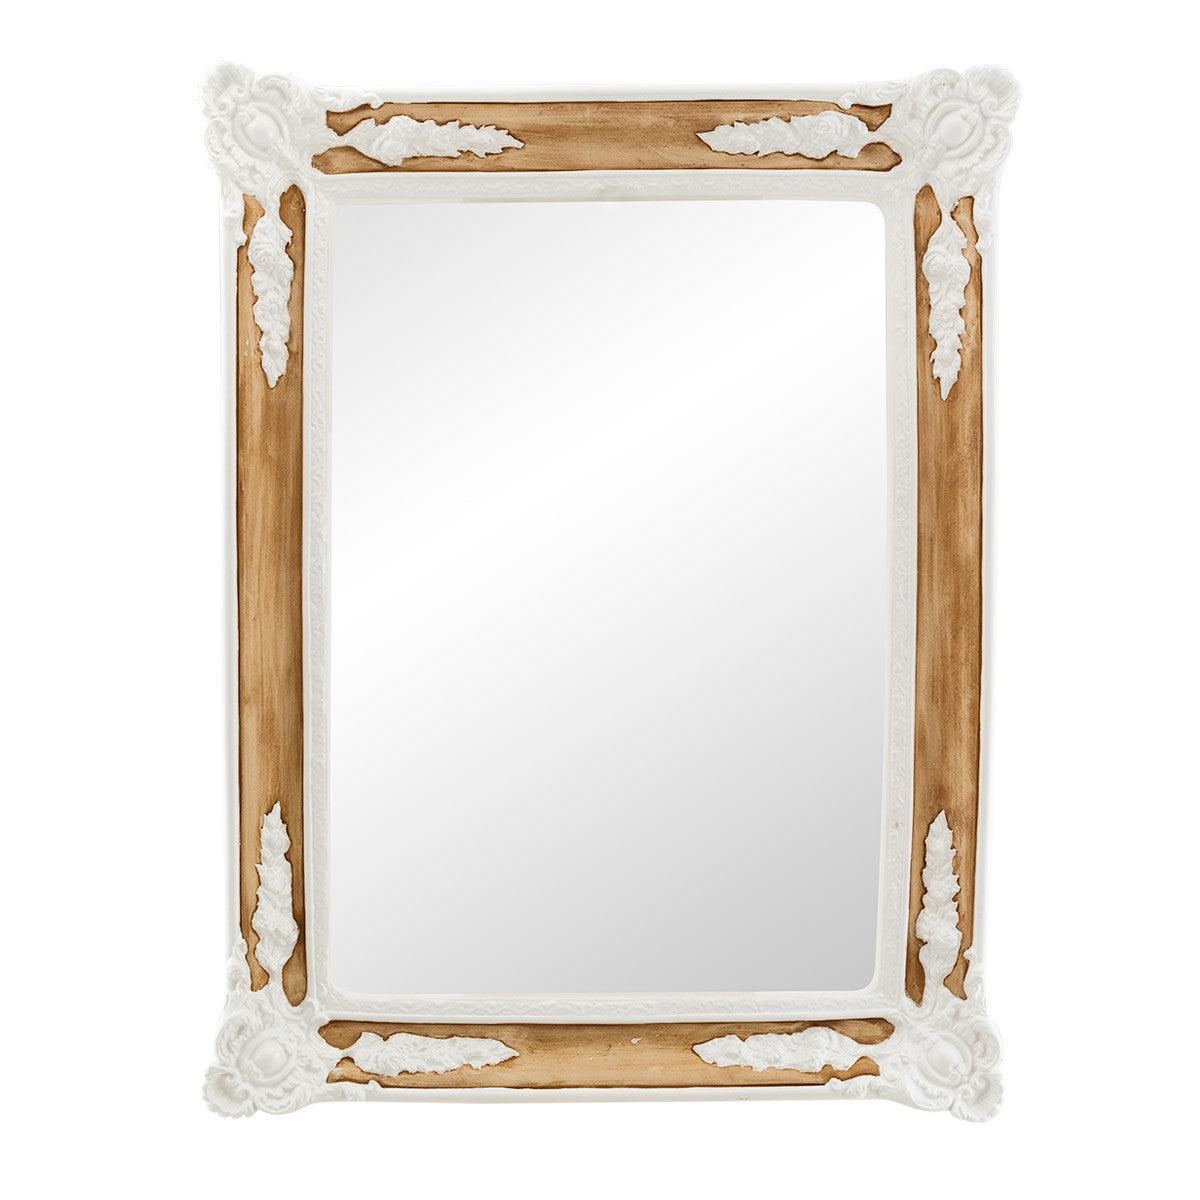 Ceramic large mirror with reliefs